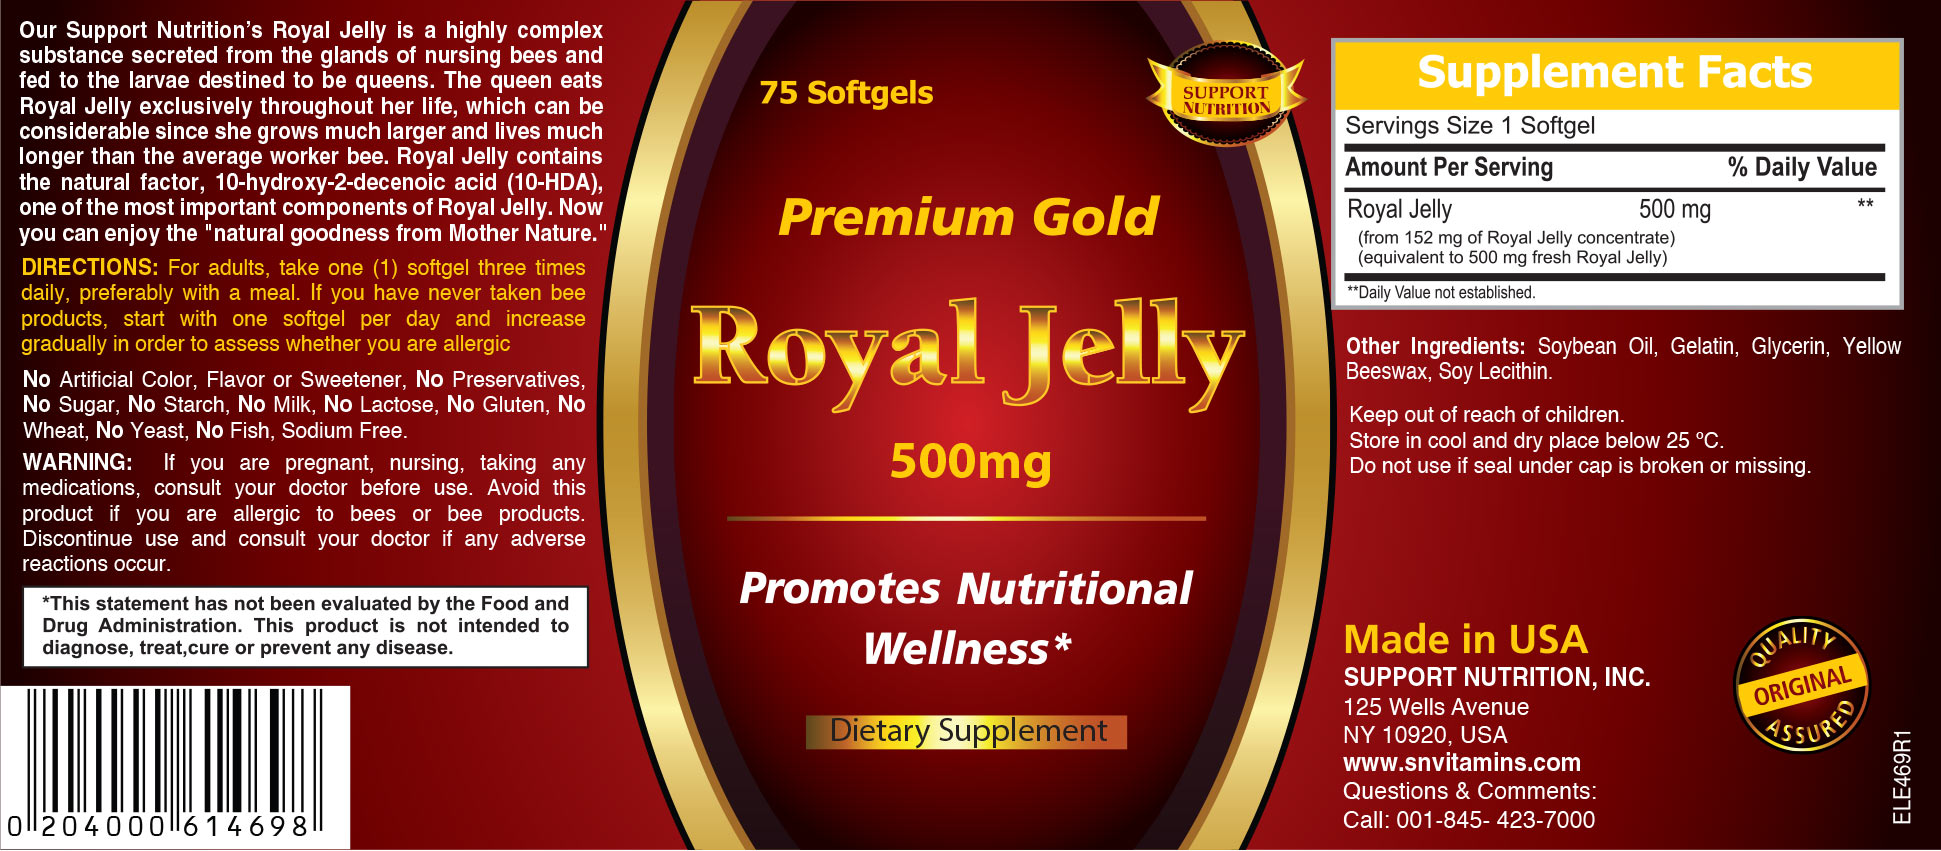 Premium Gold Royal Jelly Dietary Supplement